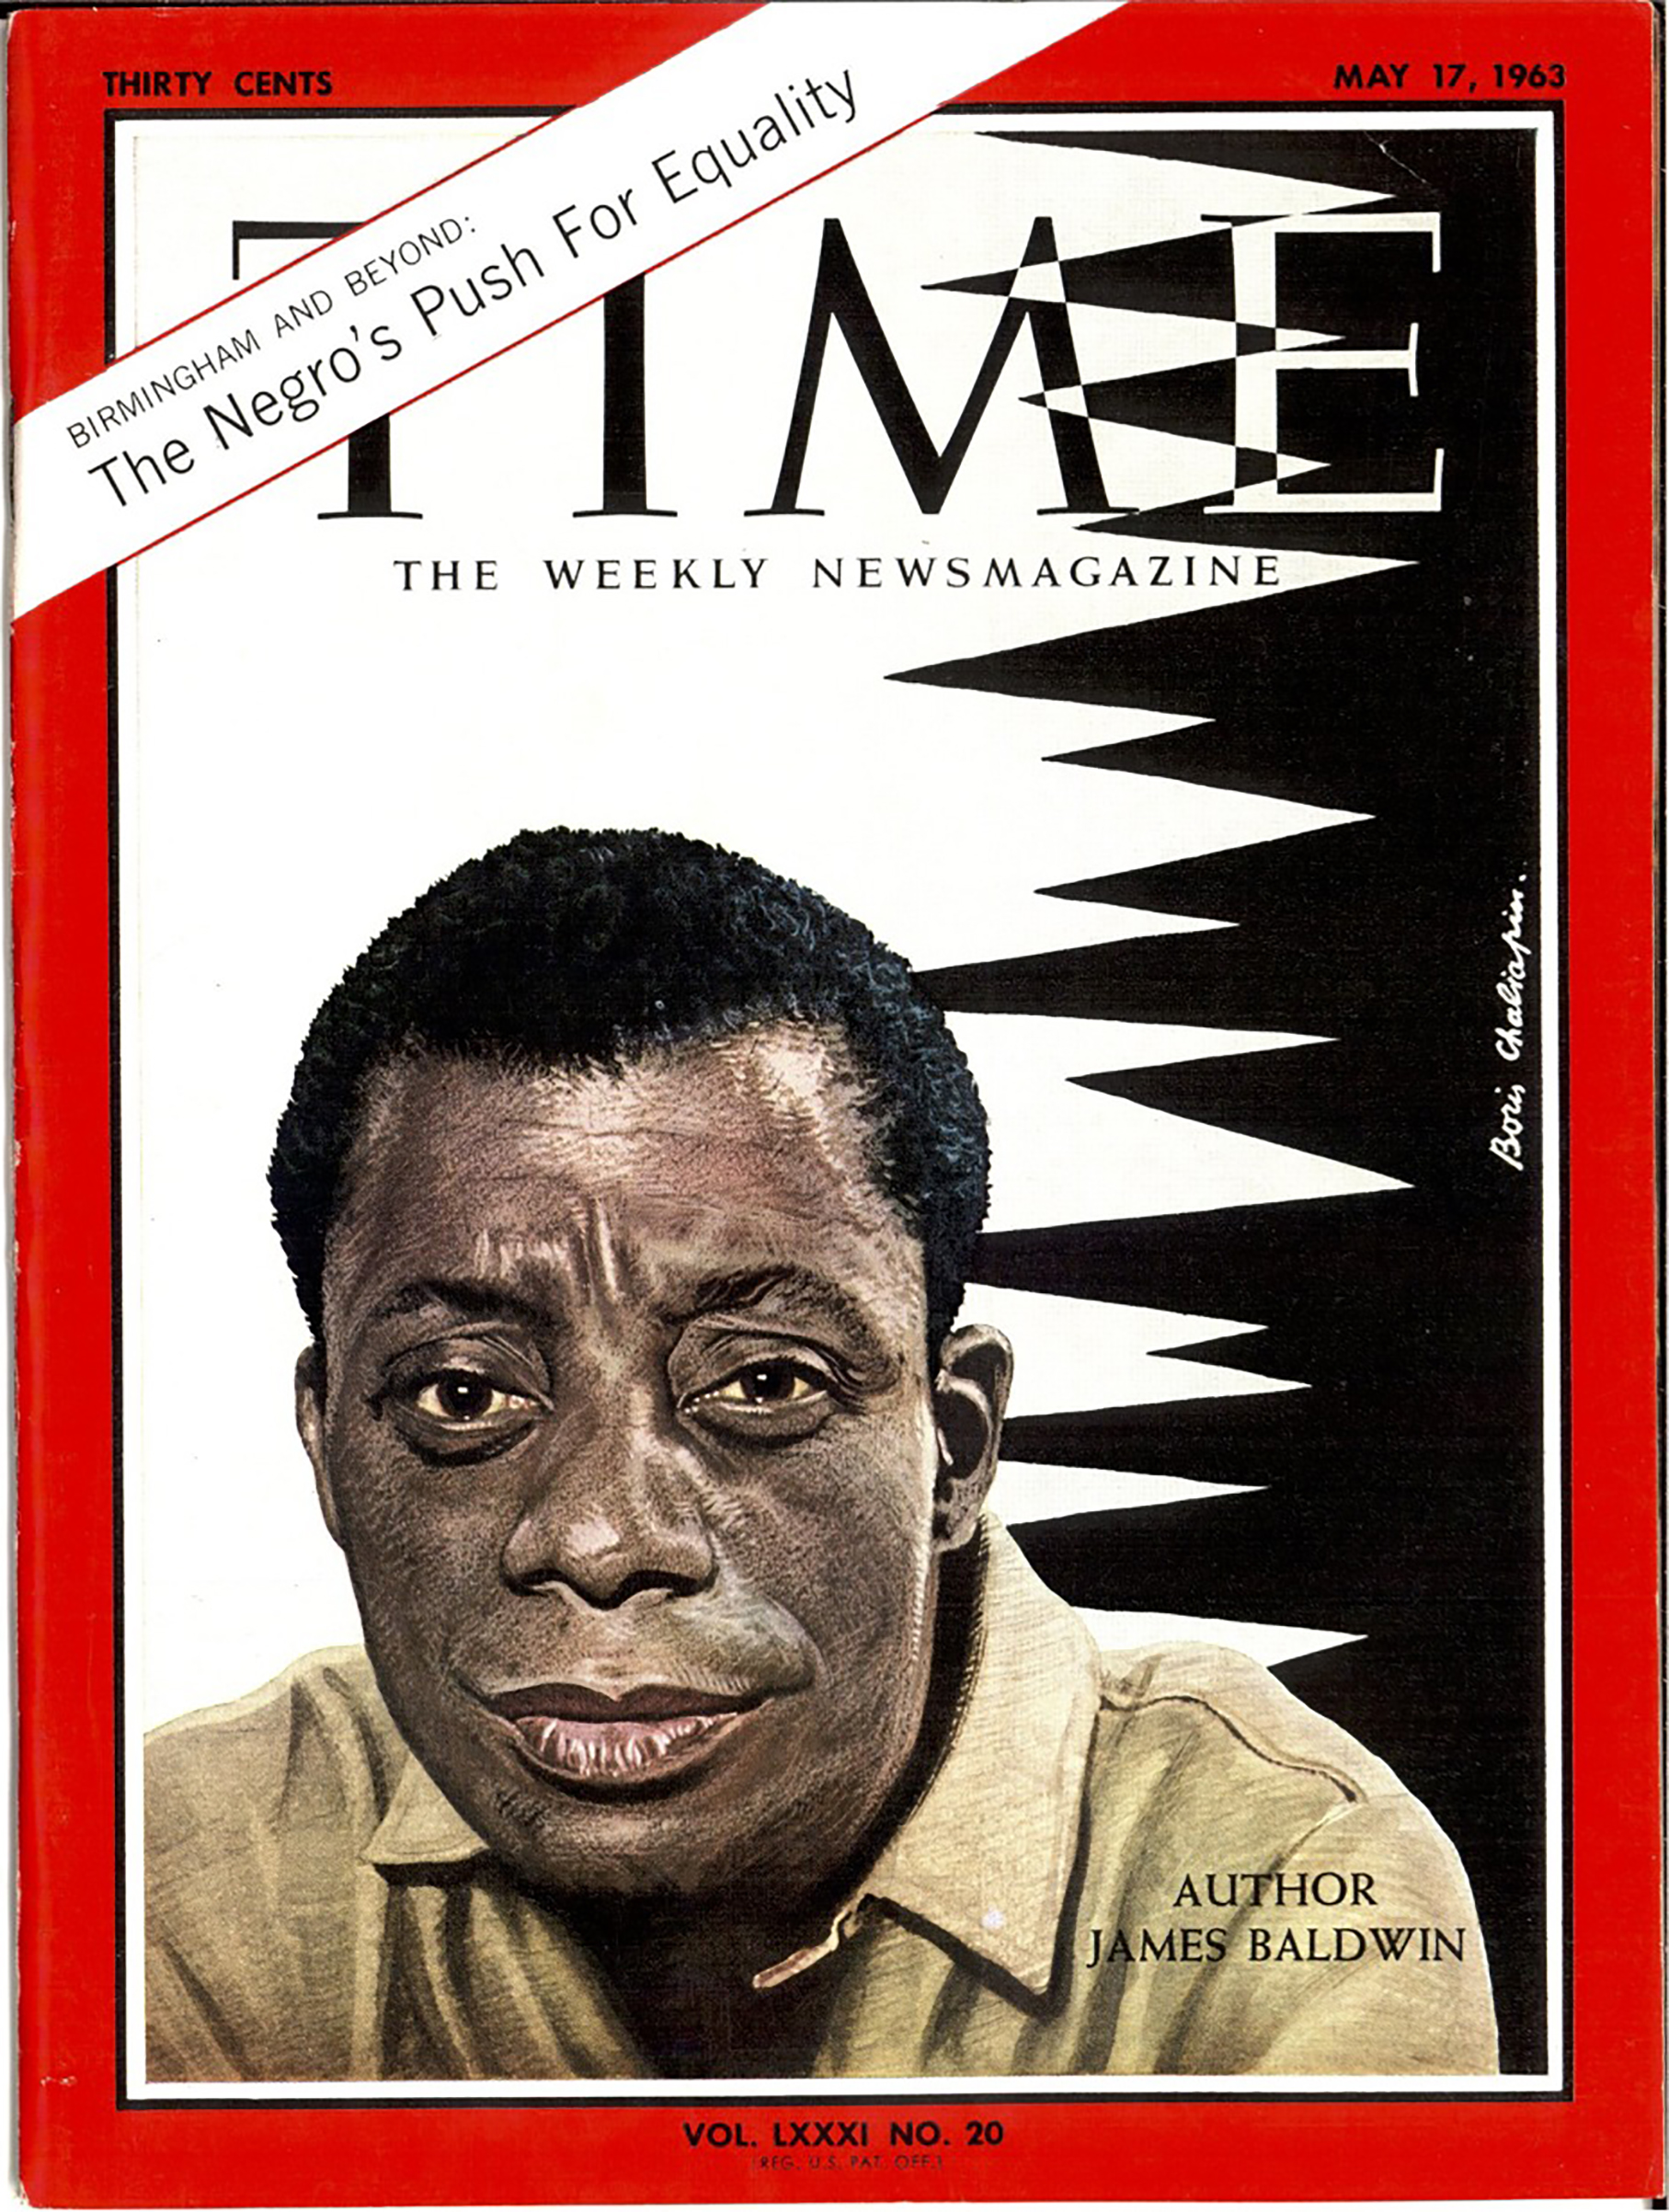 Baldwin graced the cover of TIME in May 1963 after the publication of his widely read essay on race in America